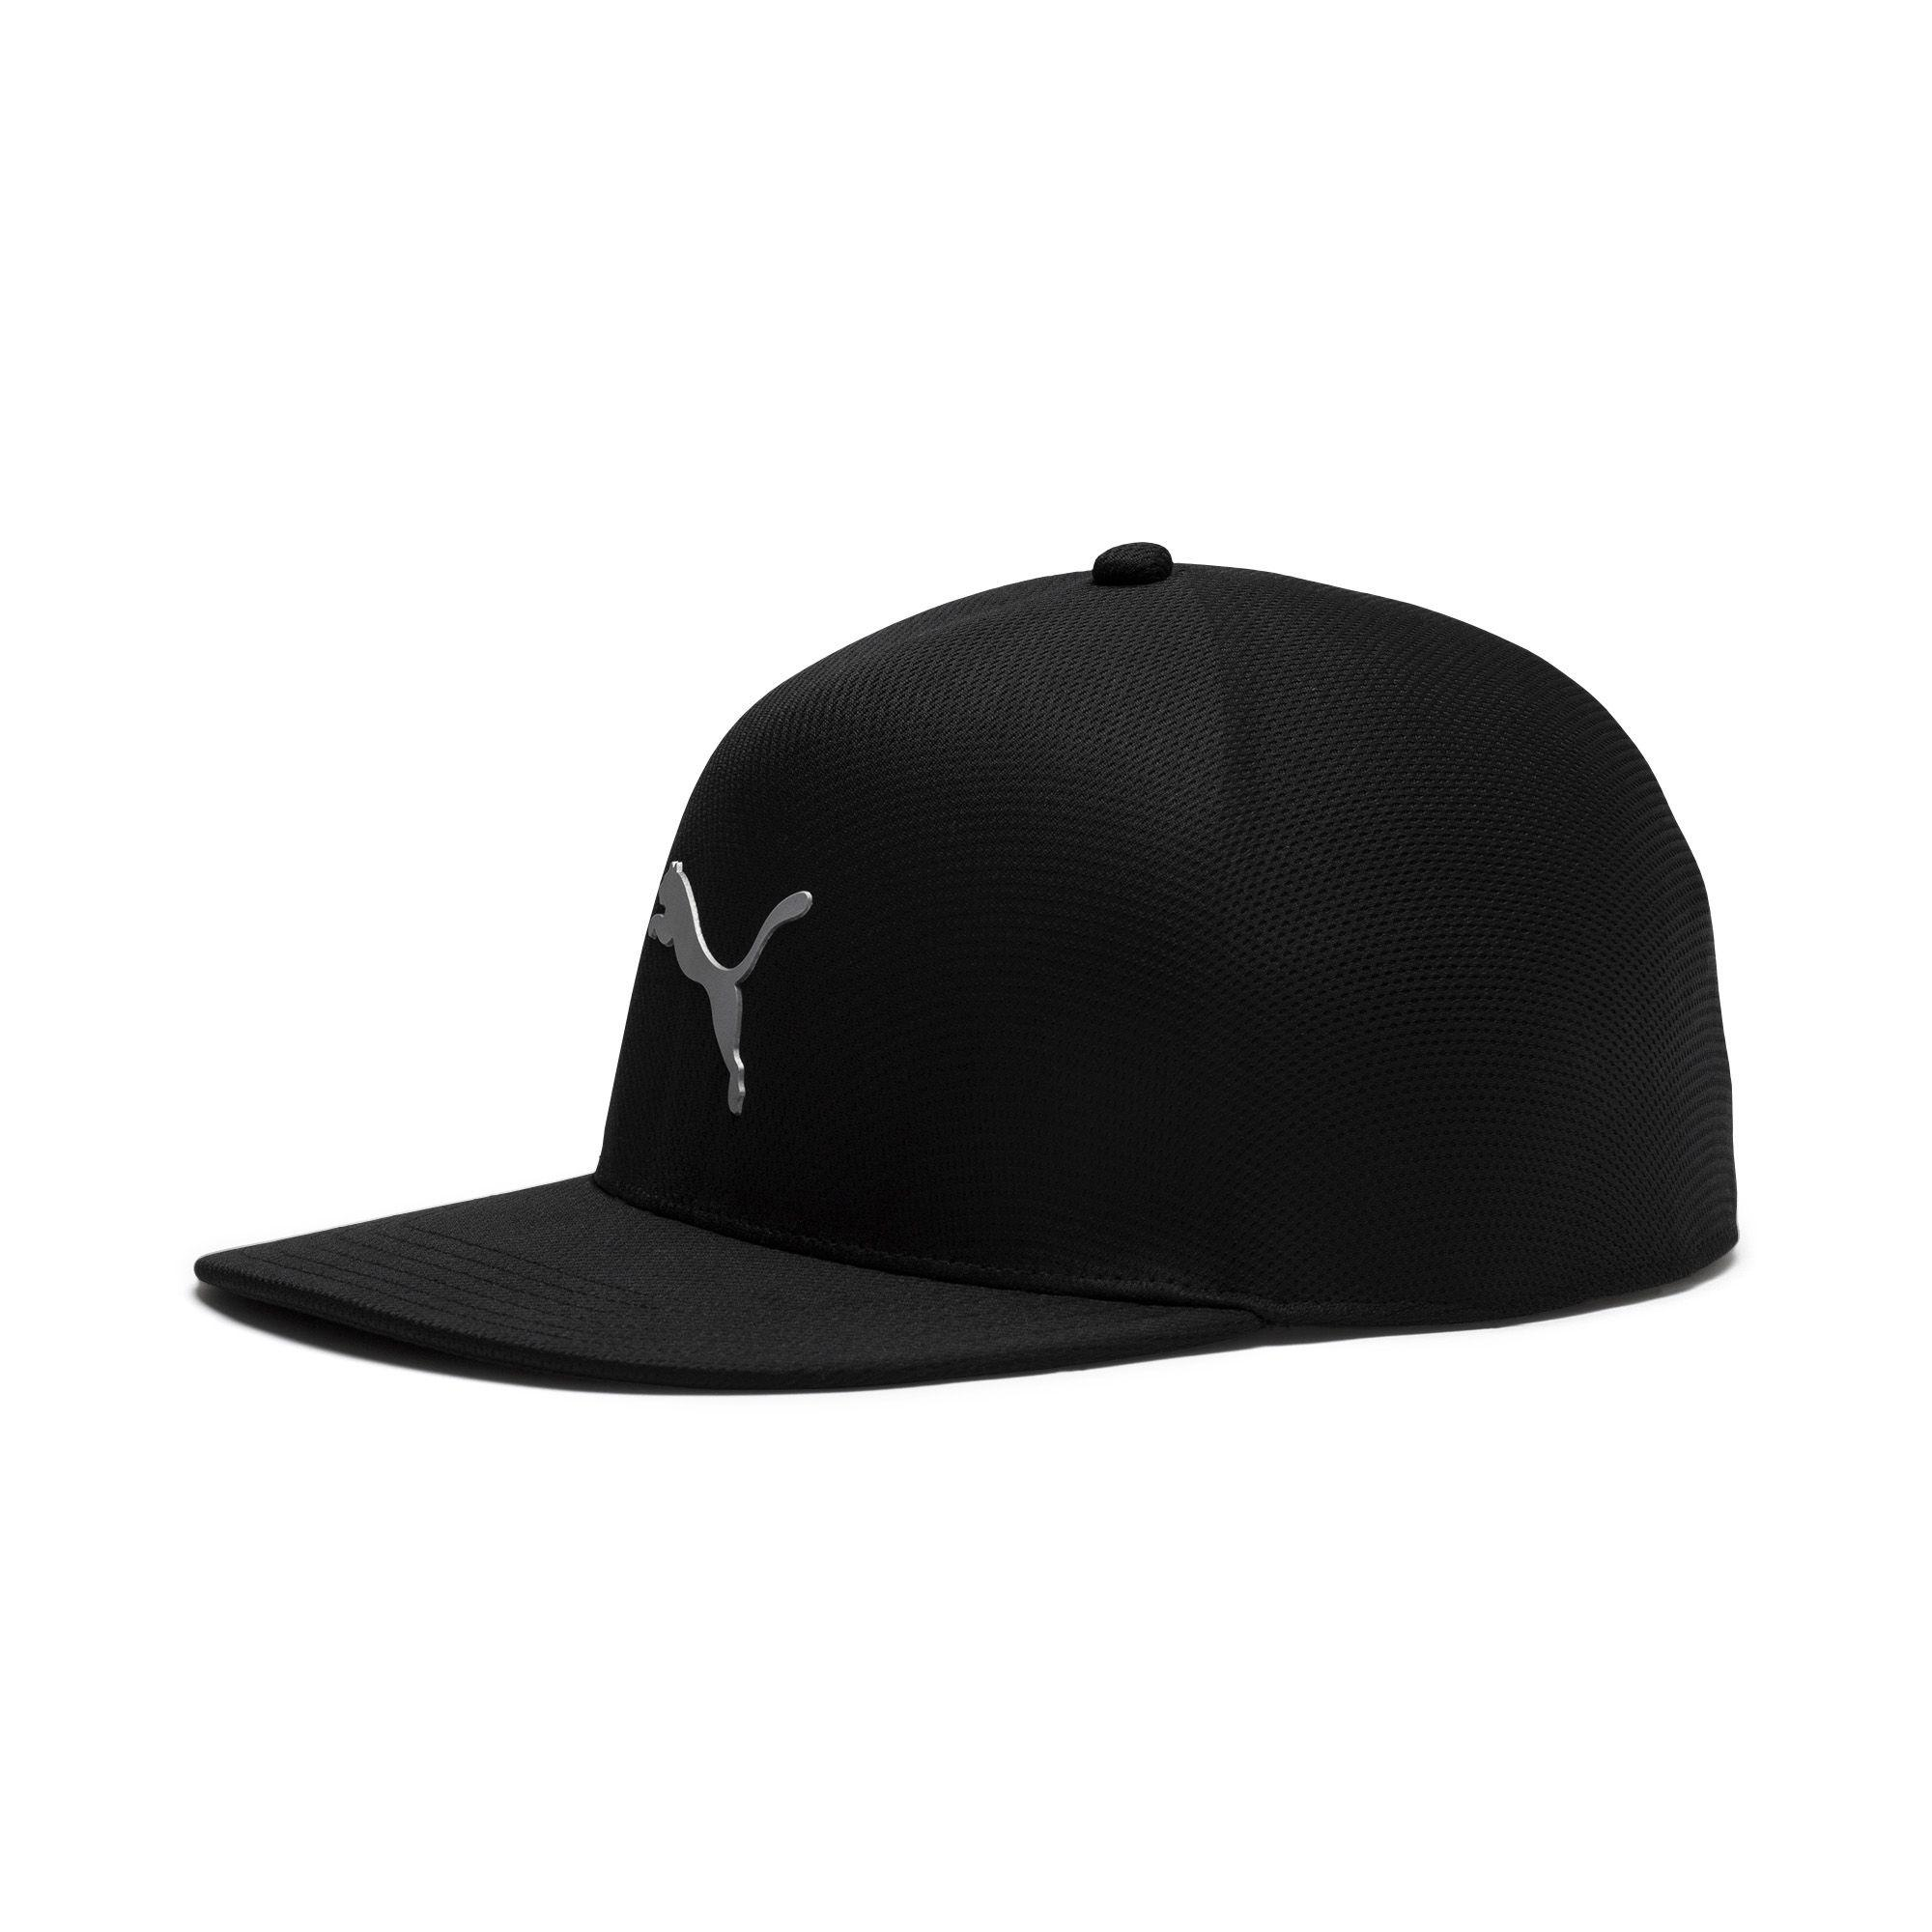 63b1ea22fcf Lyst - Puma Evoknit Pro Hat in Black for Men